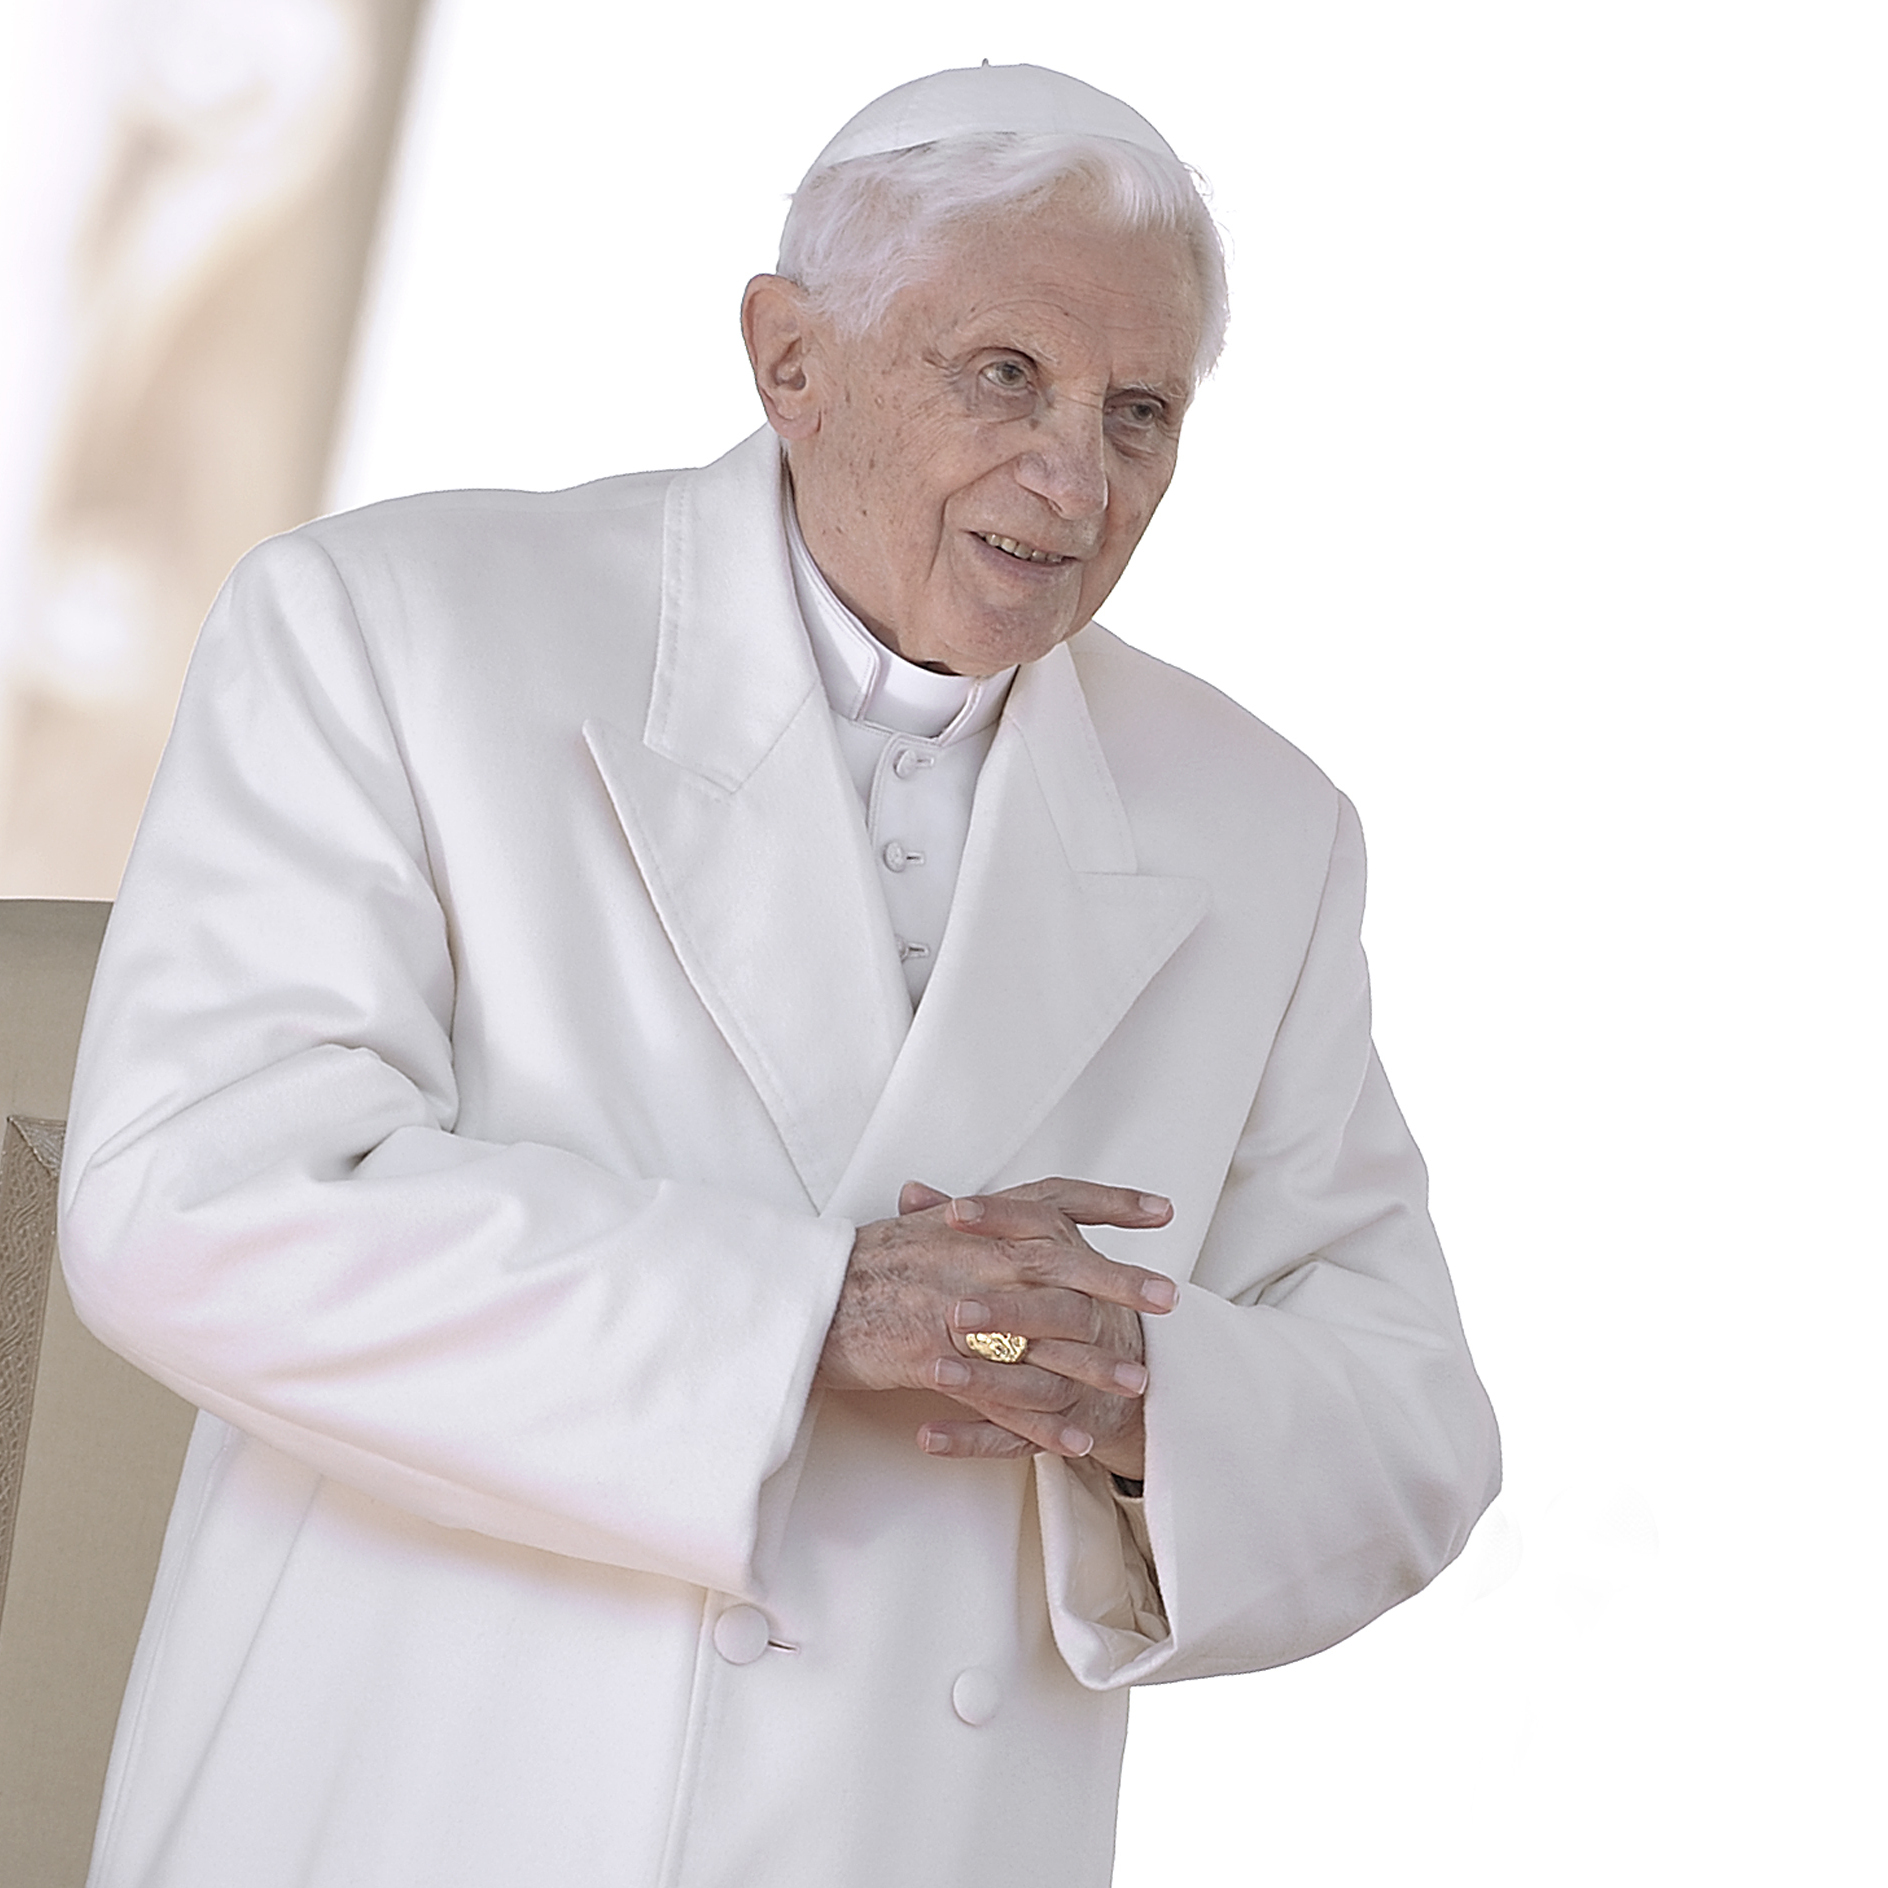 Pope Benedict XVI on Wednesday during his final general audience at the Vatican.